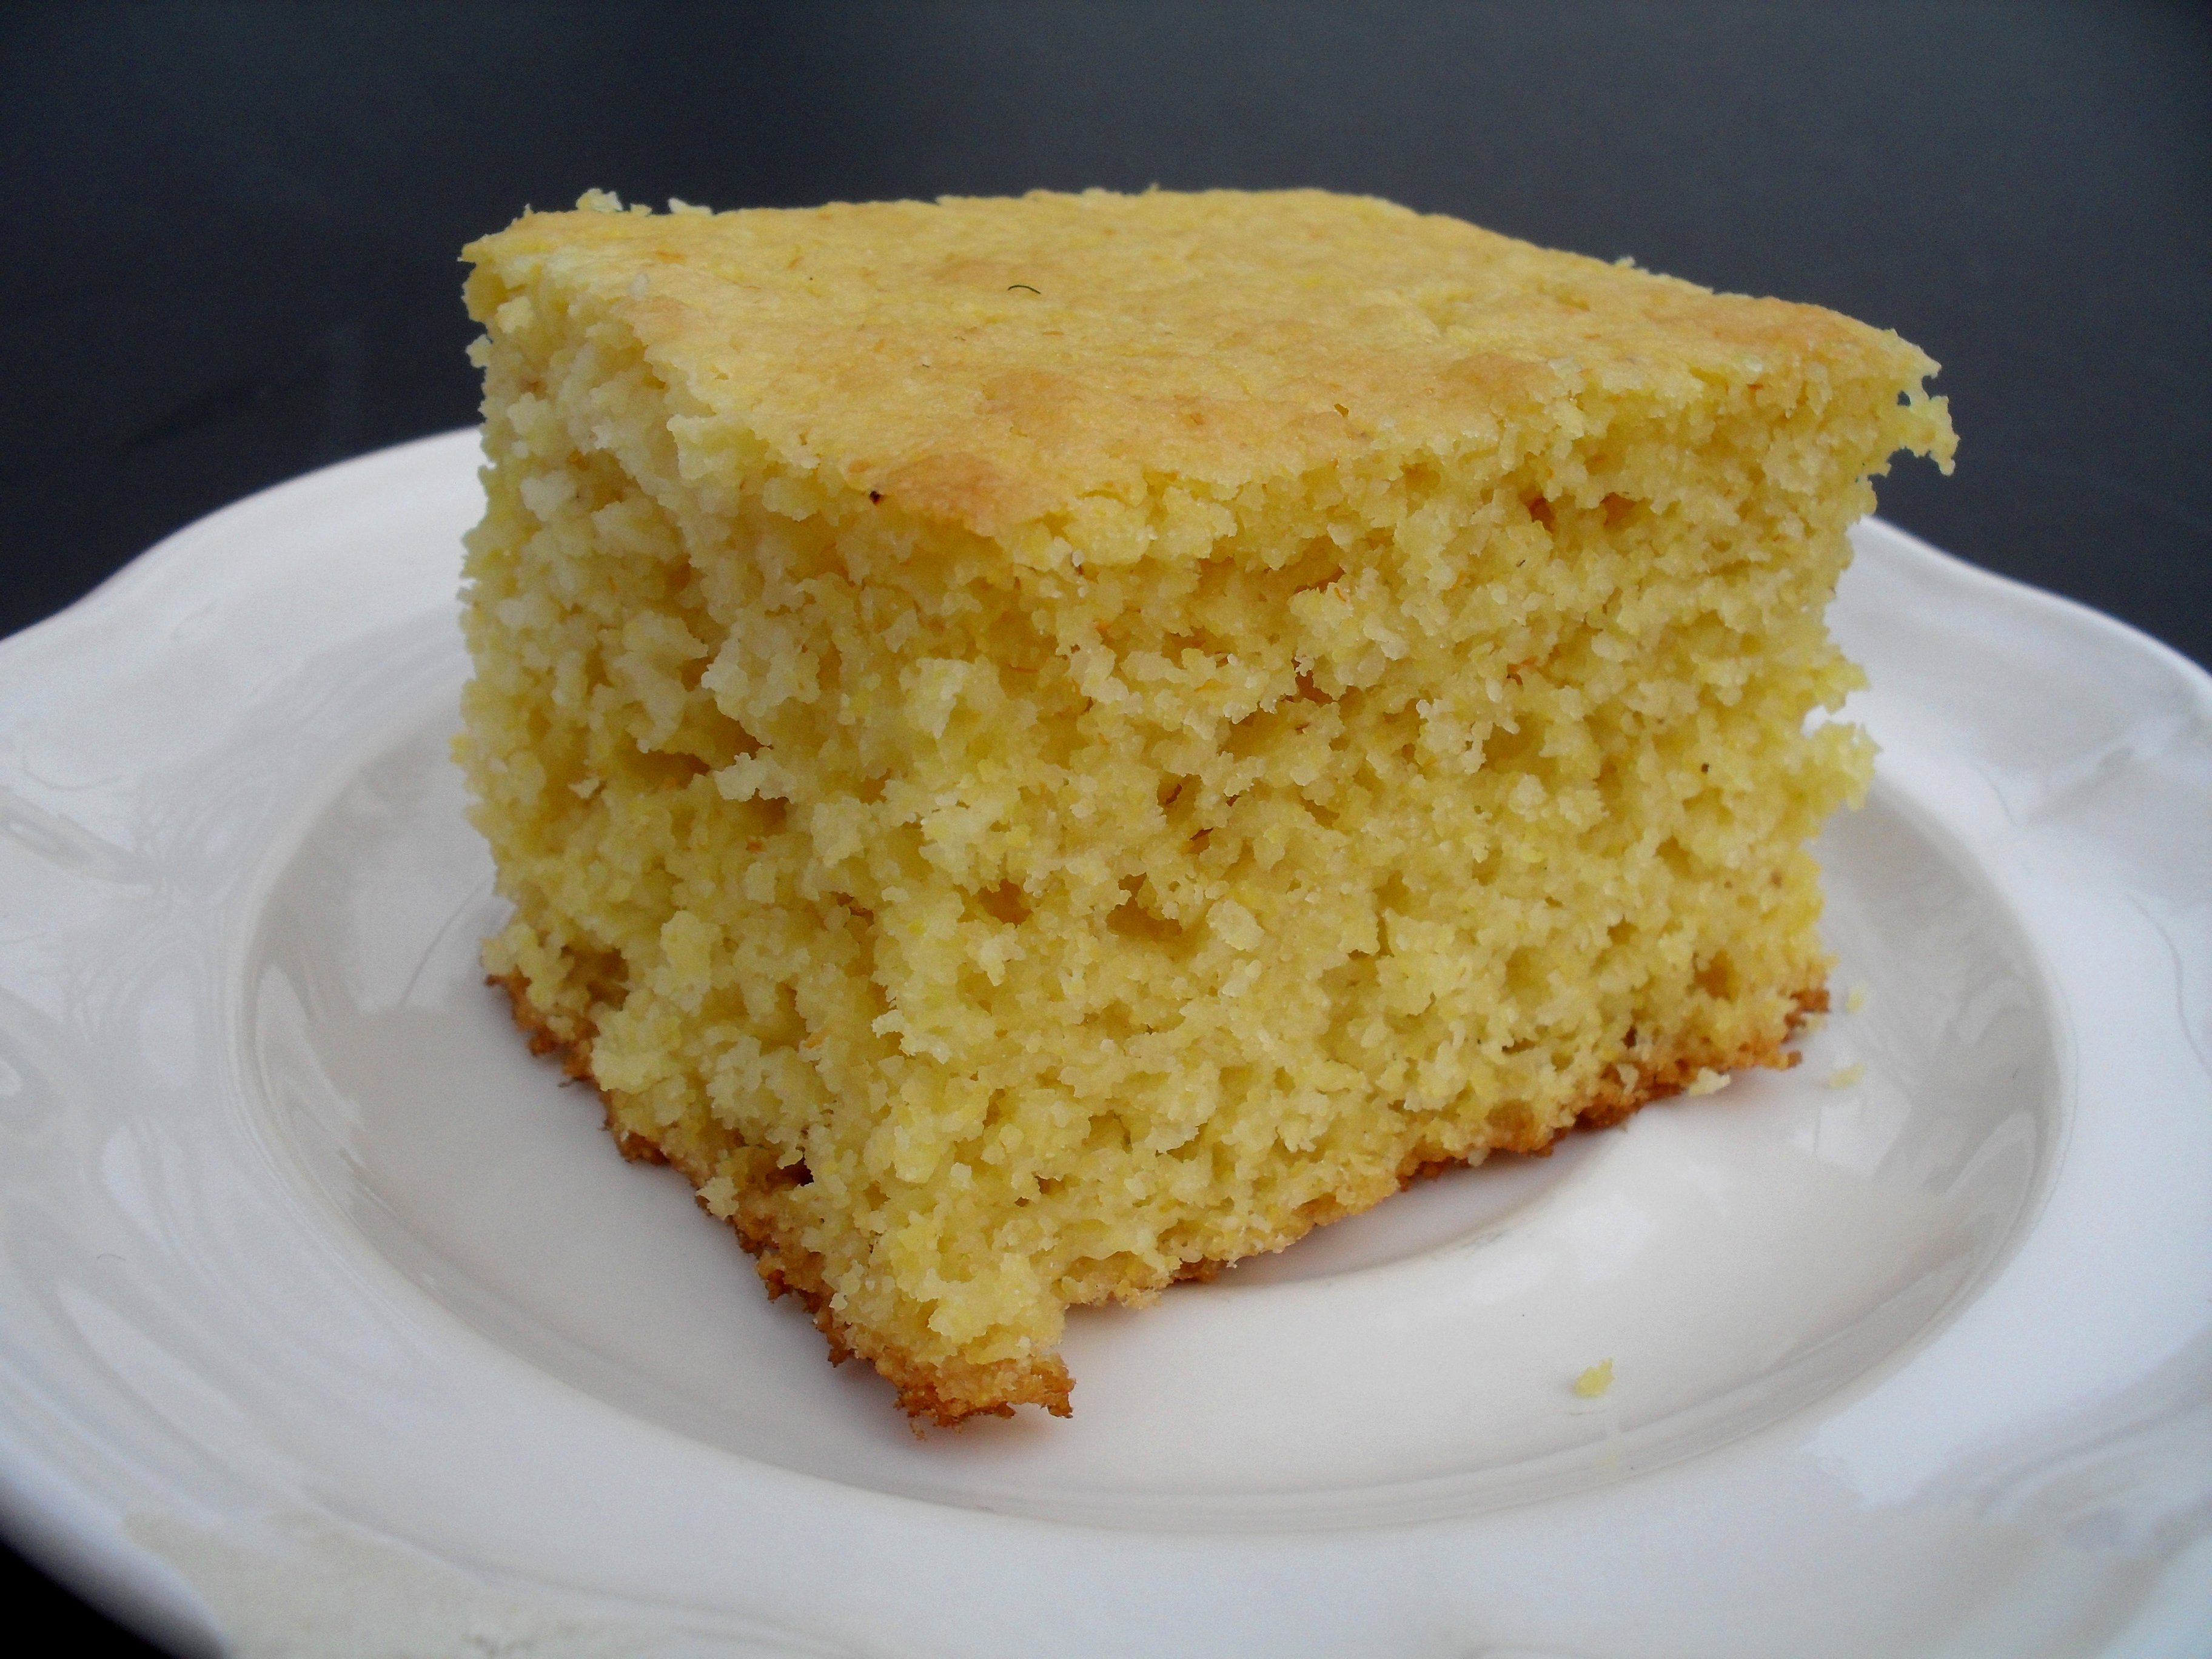 be? Mom made her cornbread with whole wheat flour. Every cornbread ...